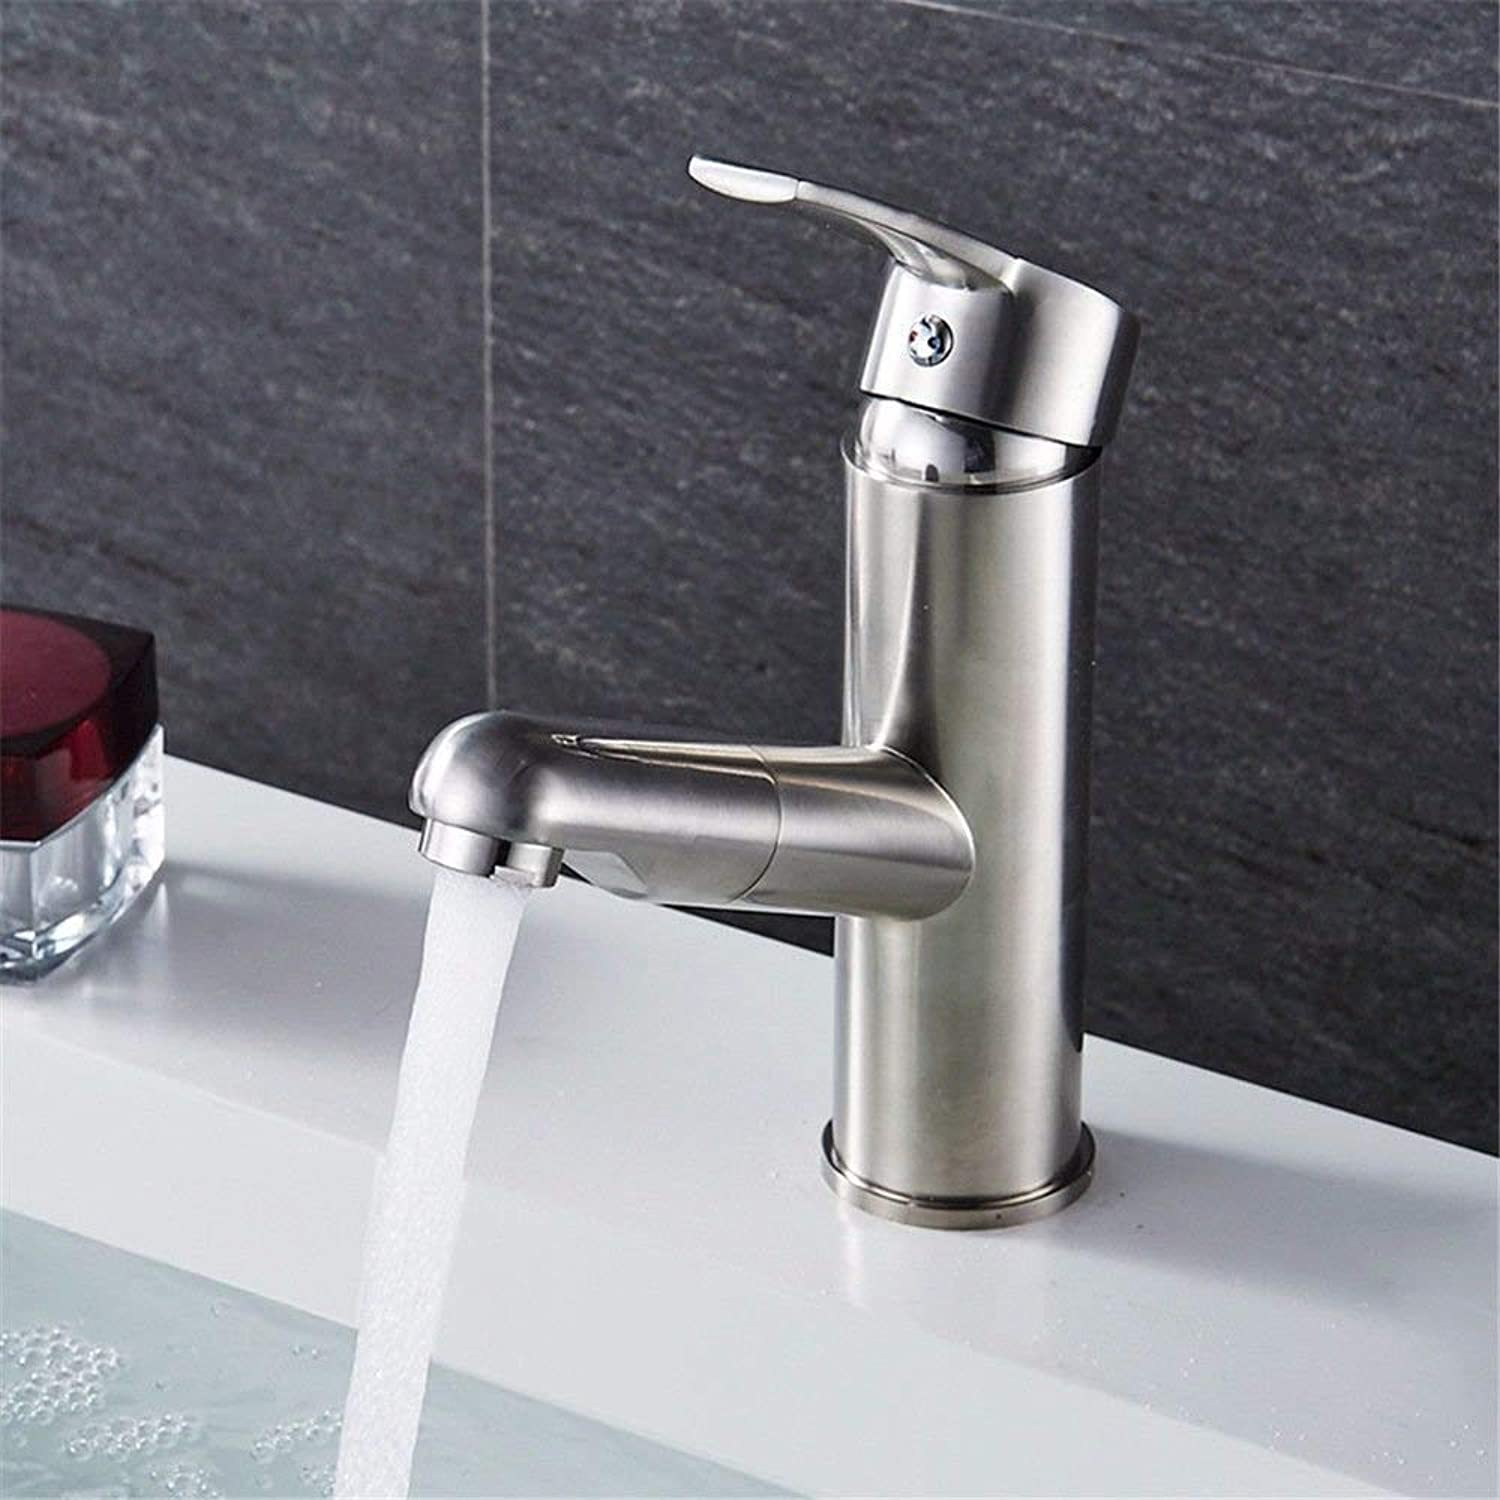 FERZA home Sink Mixer Tap Bathroom Kitchen Basin Water Tap Leakproof Save Water Copper-Nickel Brushed Pull-Down Bathroom Sink Hot And Colds Low) (color   Low Profile)